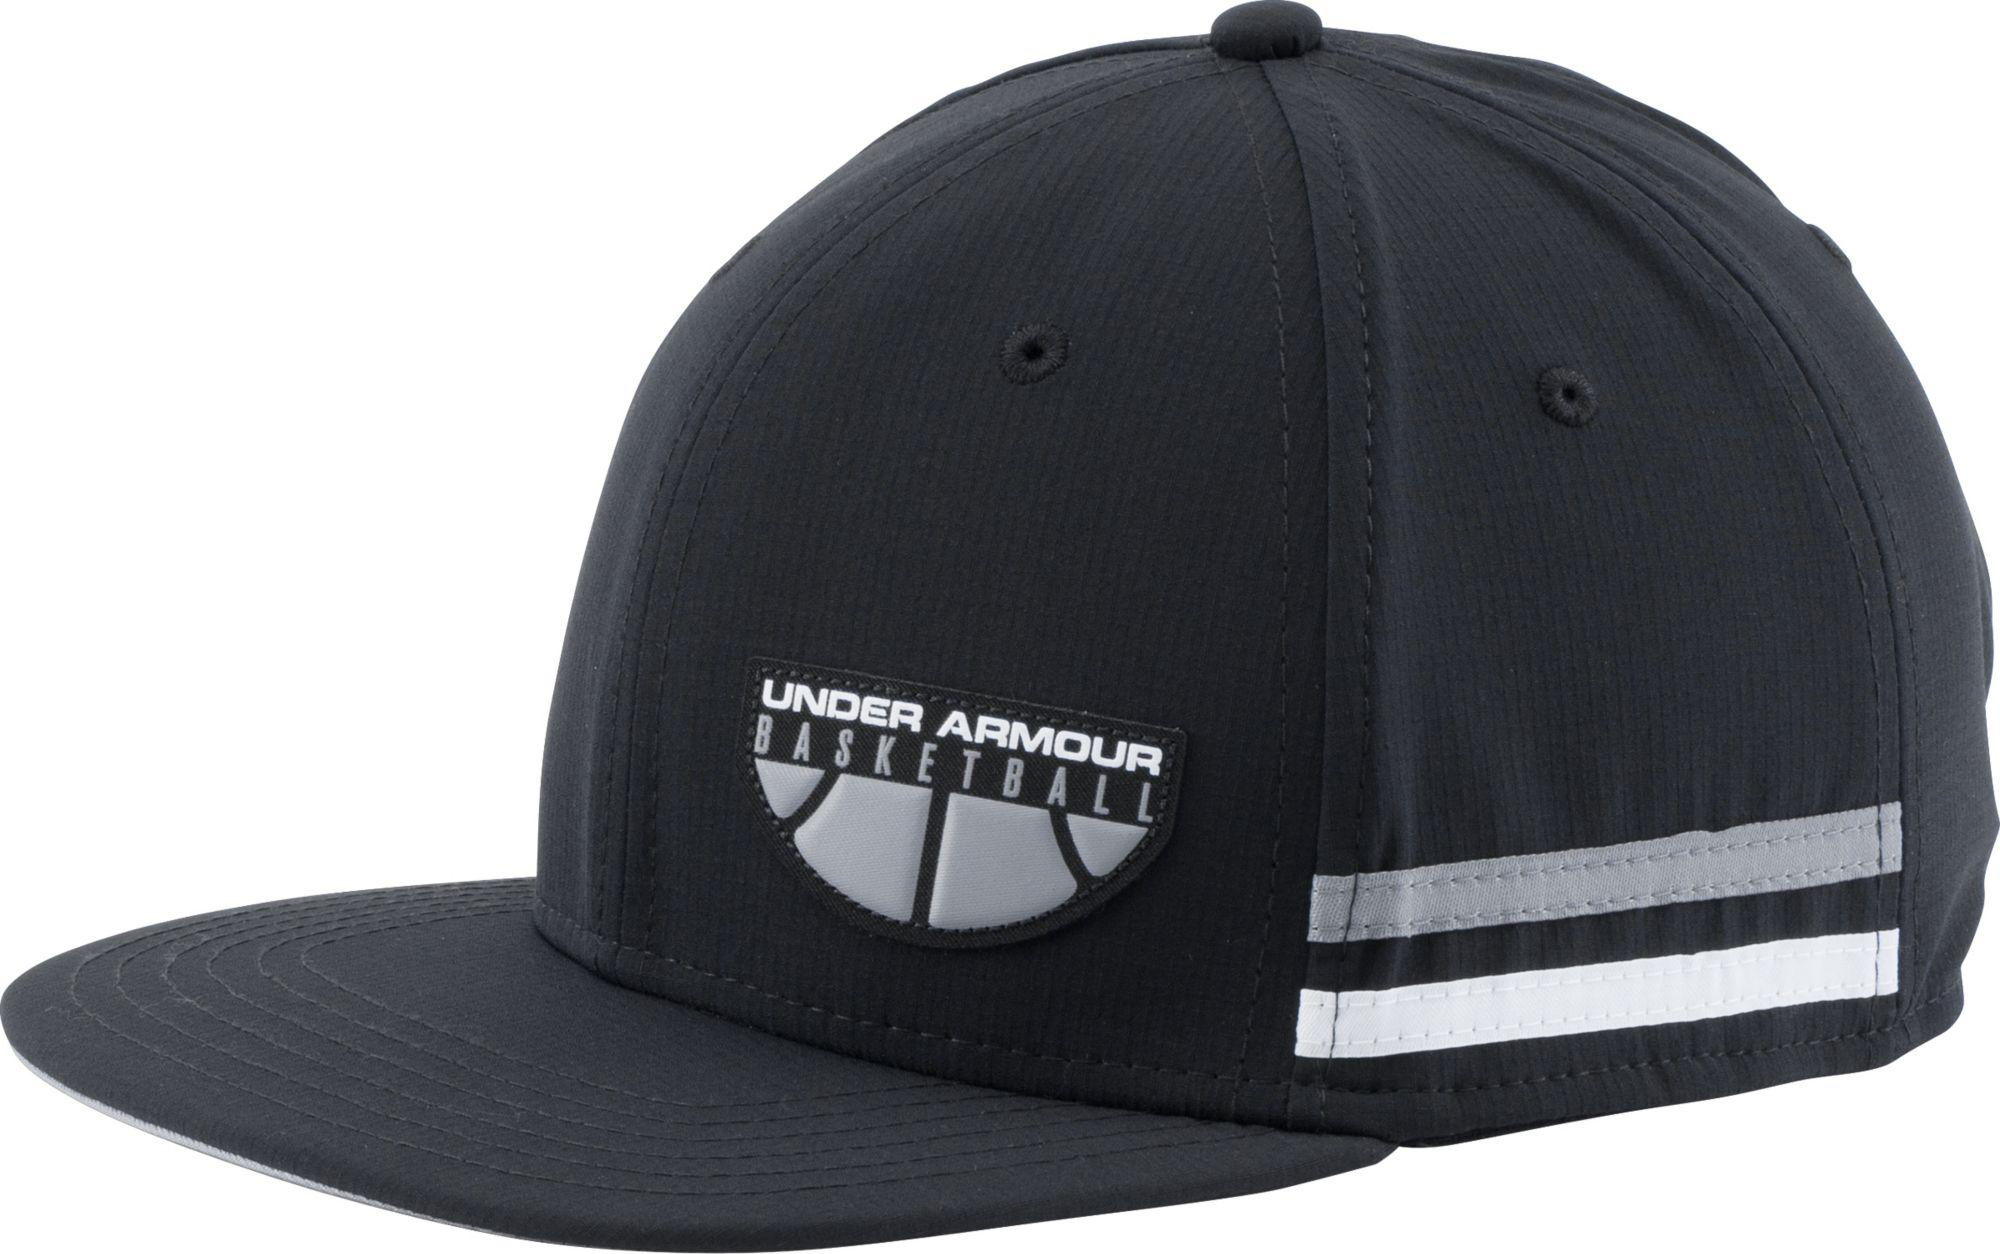 Lyst - Under Armour Asketball Graphic Snapback Hat in Black for Men 9b98c4fd556